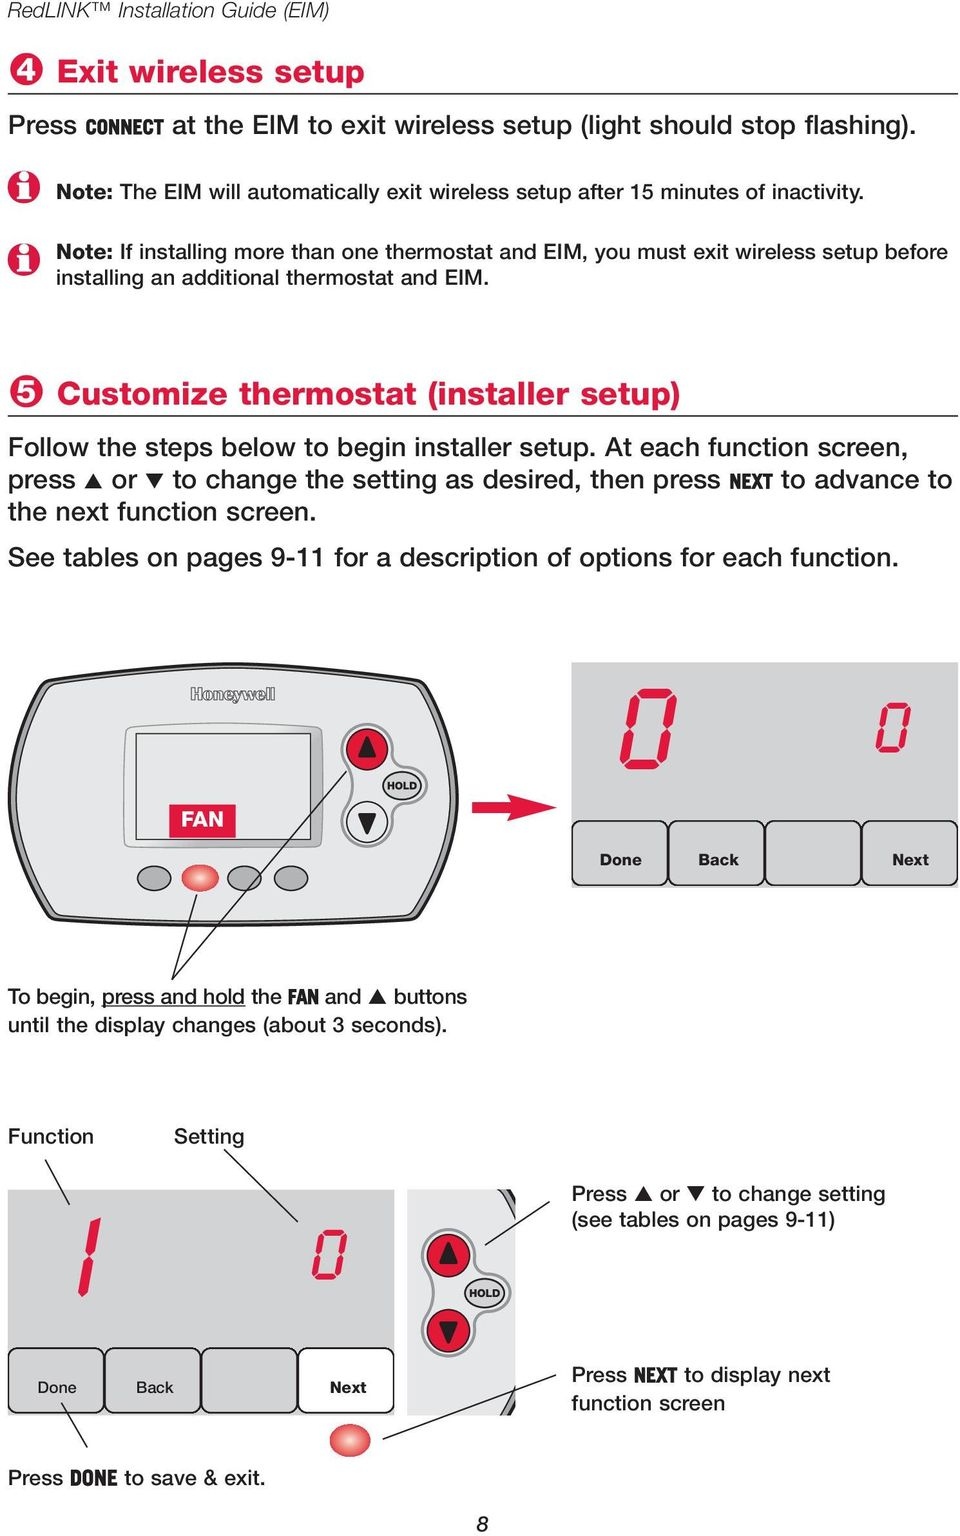 Note: If installing more than one thermostat and EIM, you must exit wireless setup before installing an additional thermostat and EIM.